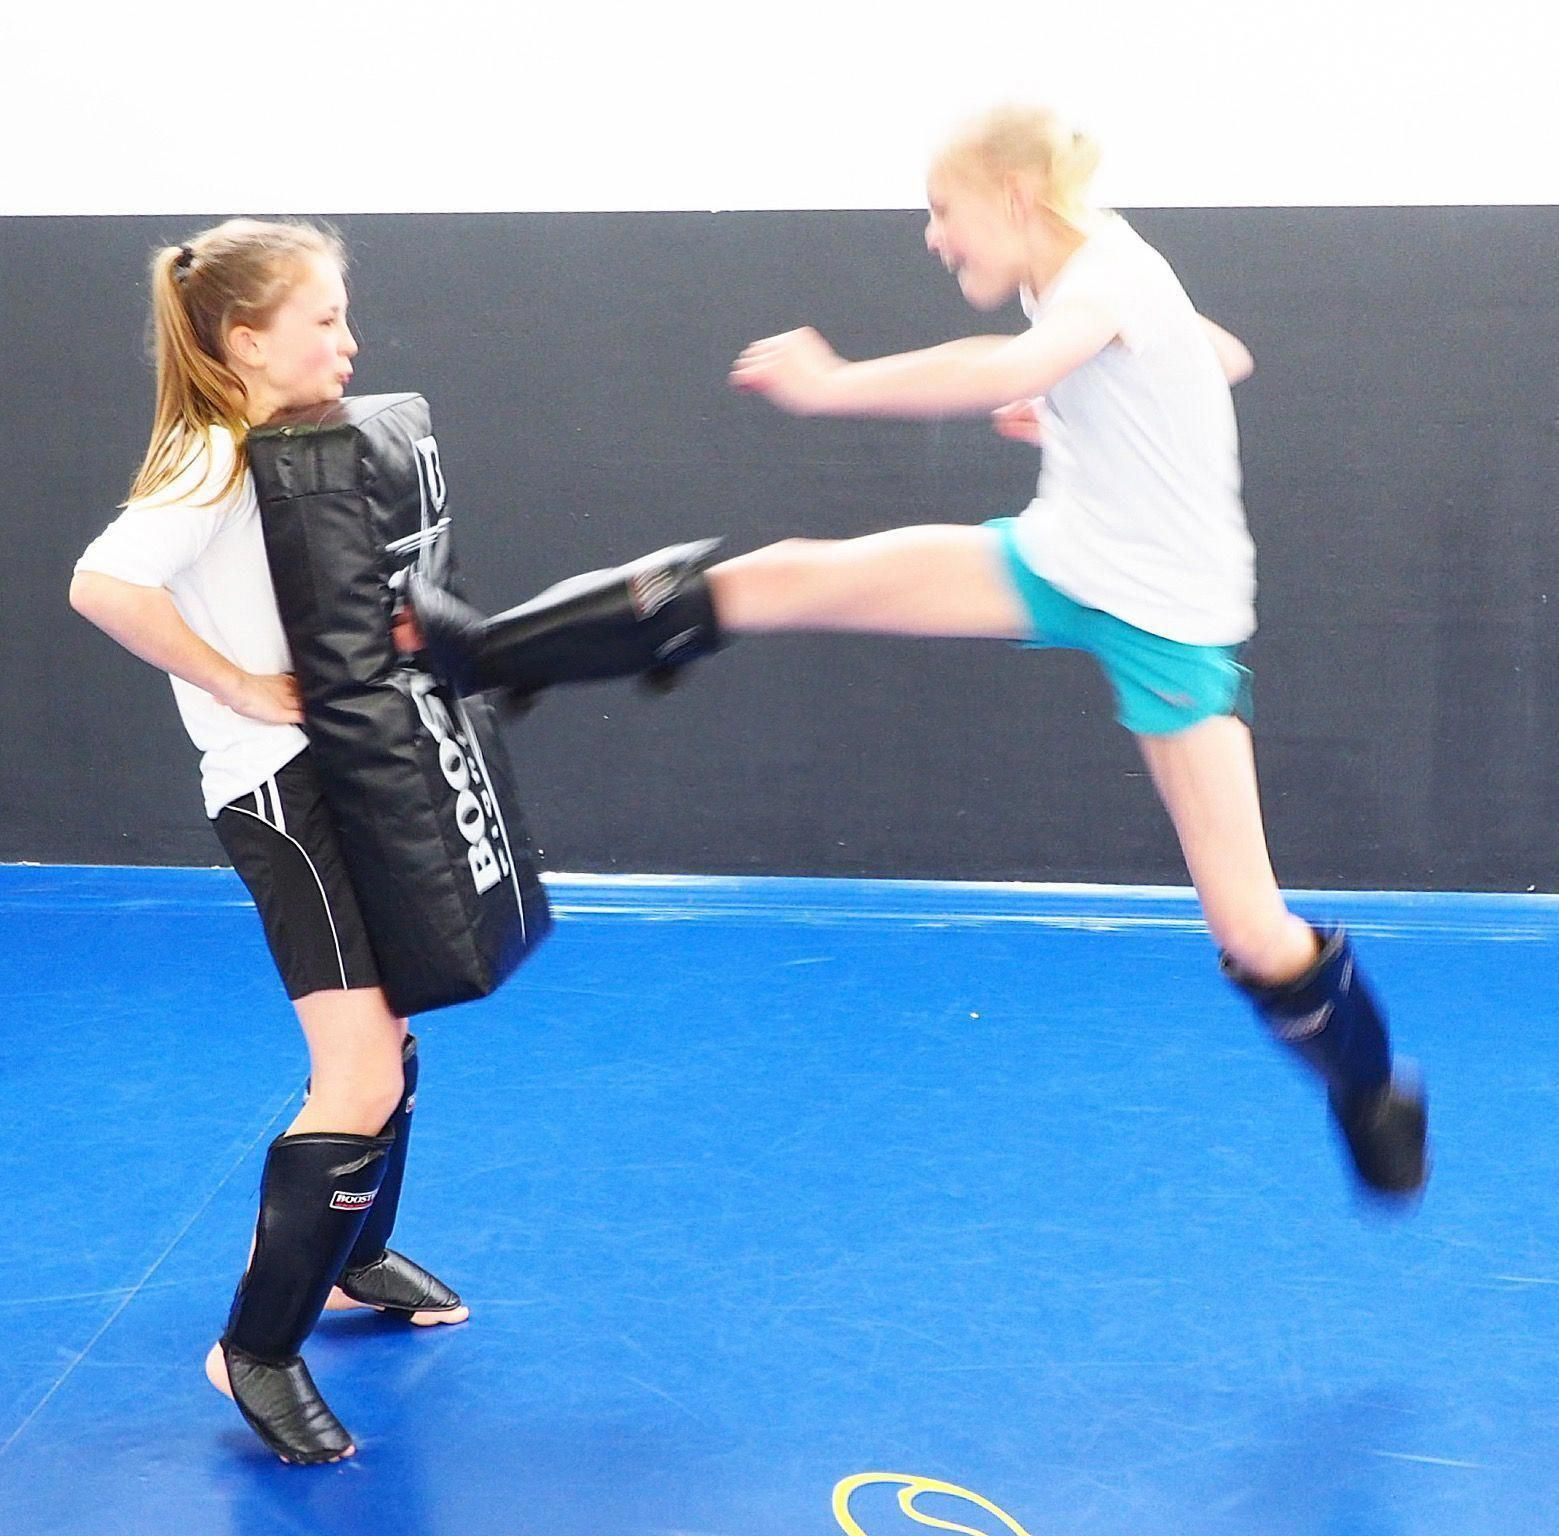 Kickboxing Workshop For Kids So Much Fun To Photograph Children